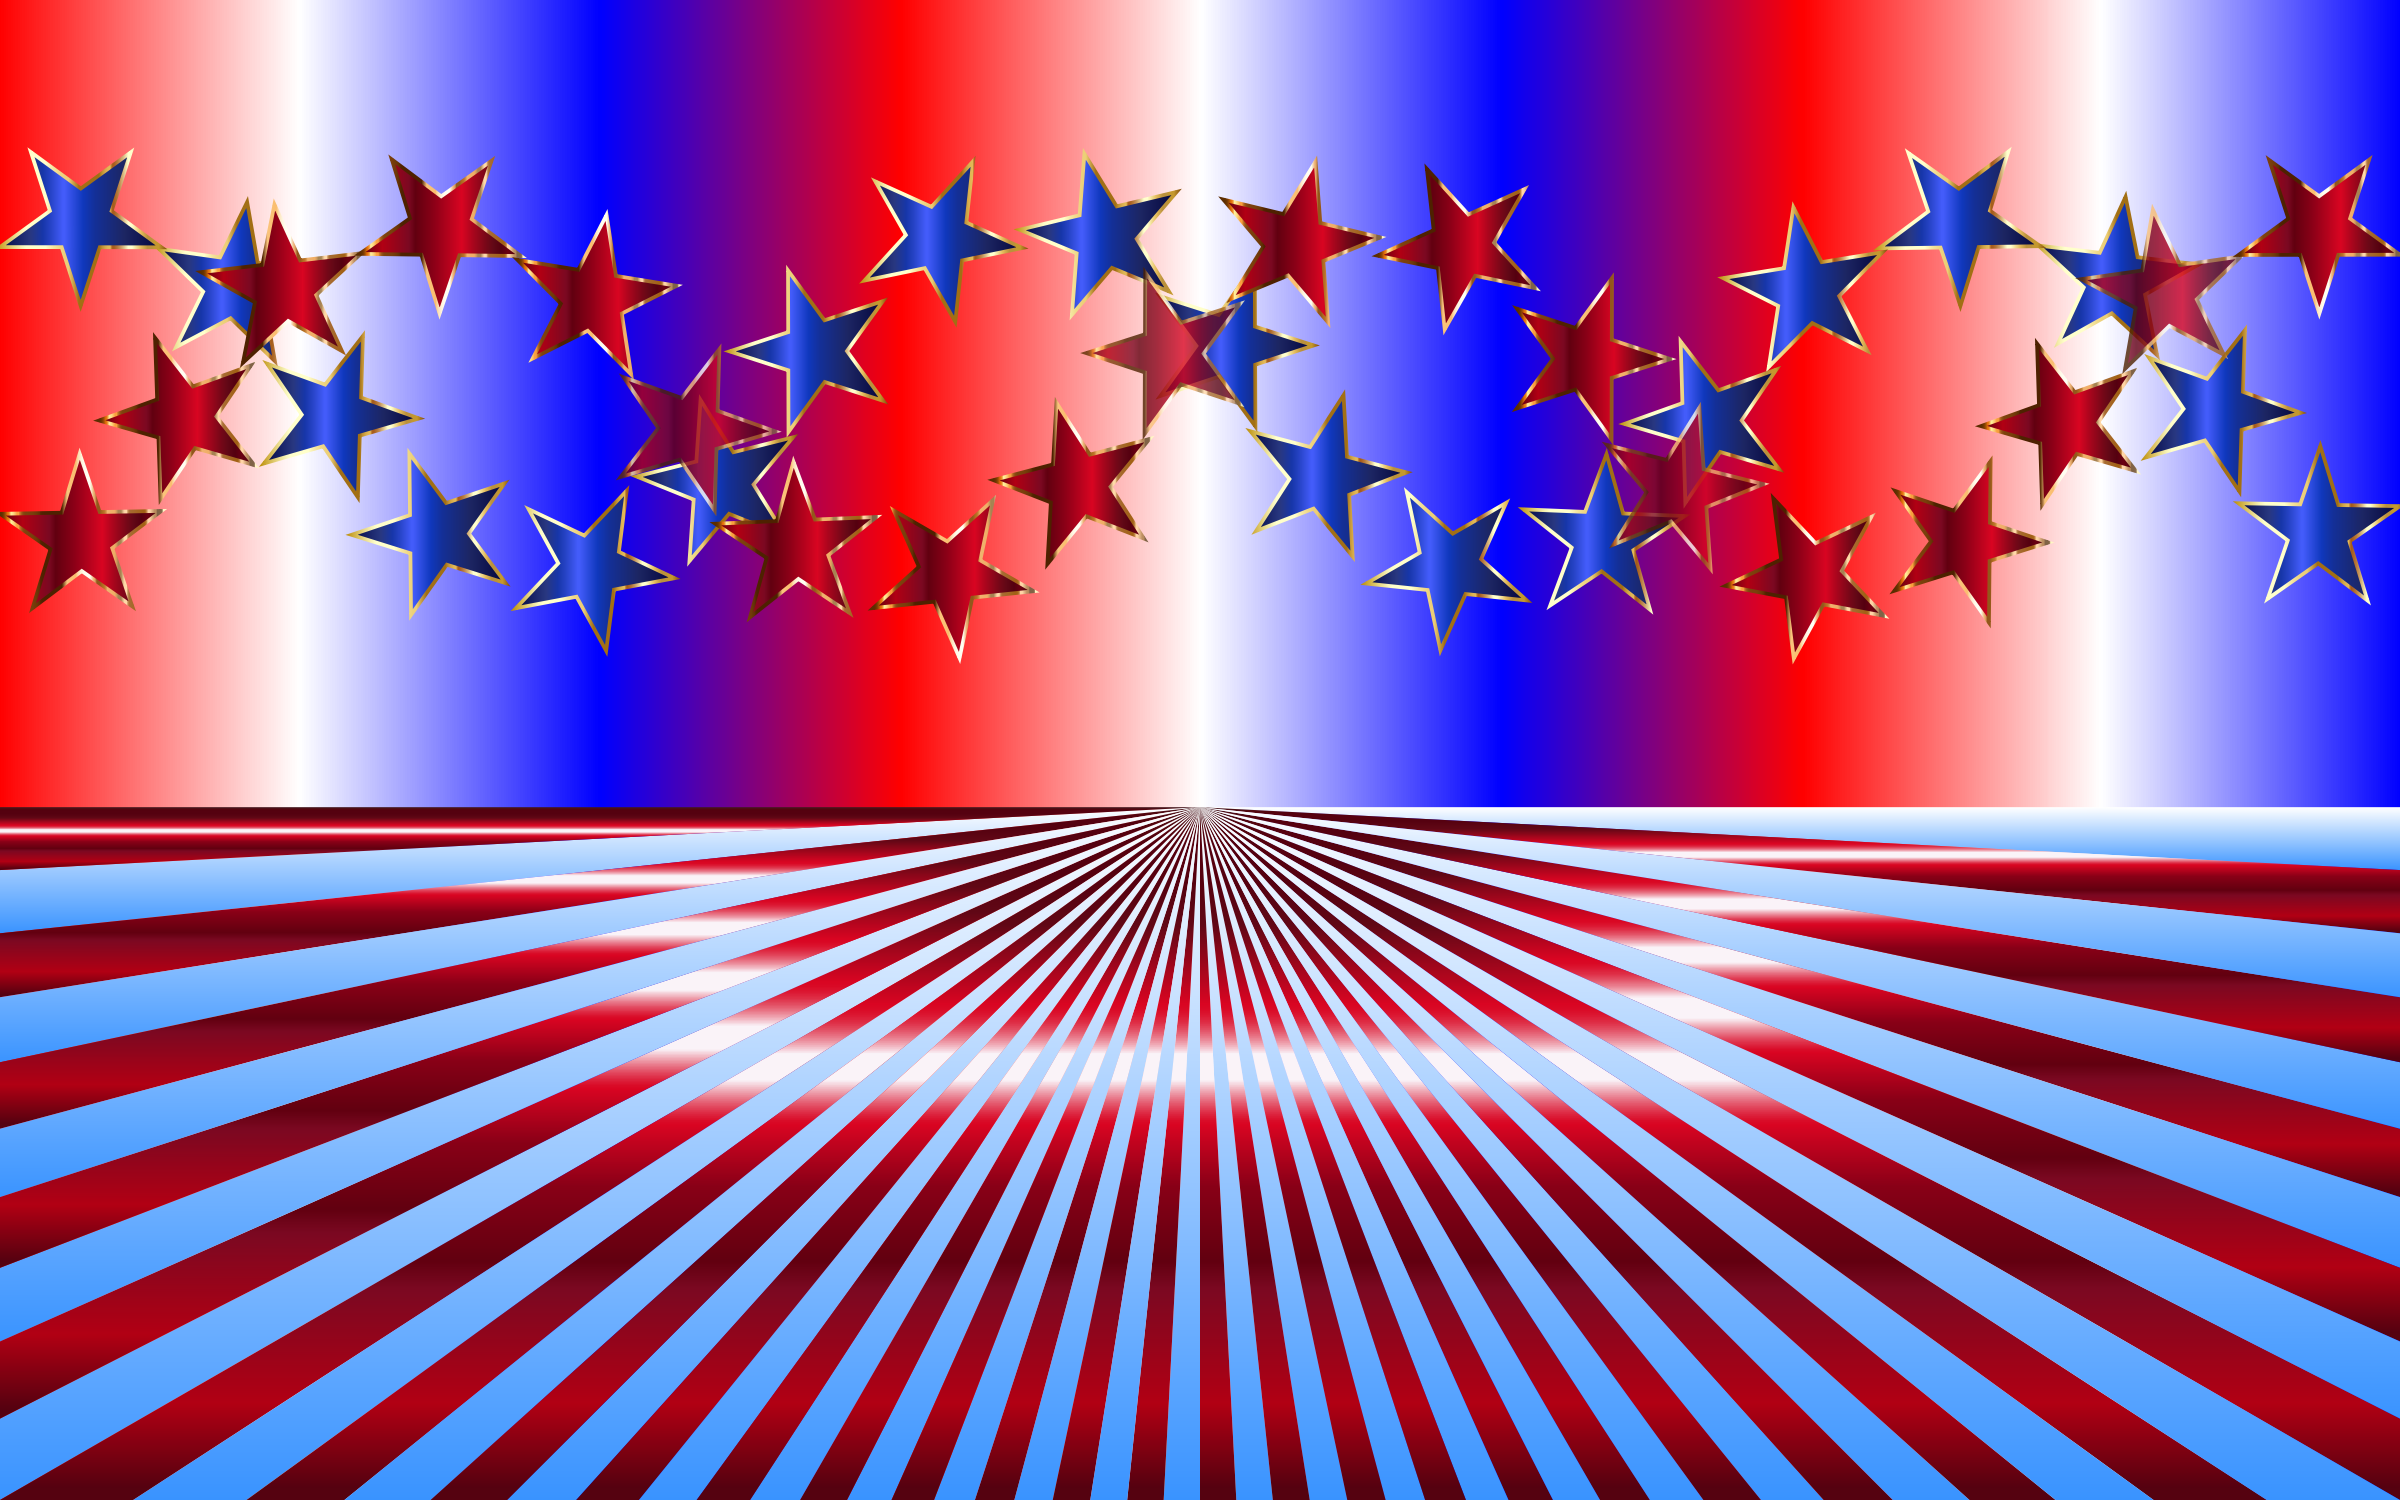 Red White Blue Background by GDJ